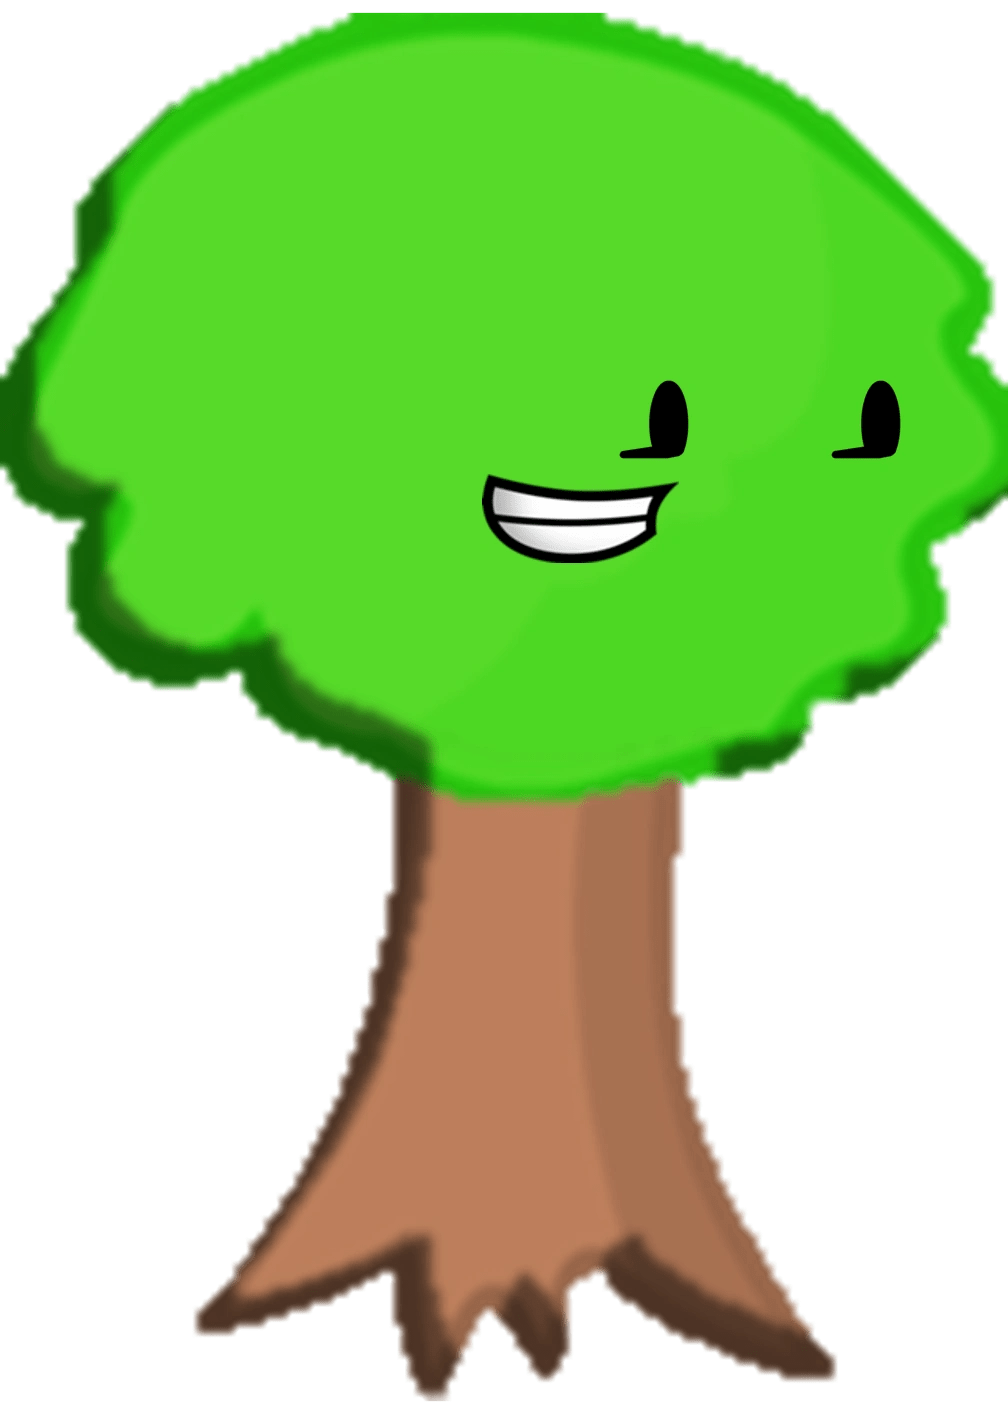 Battle For Bfdi Tree - Year of Clean Water